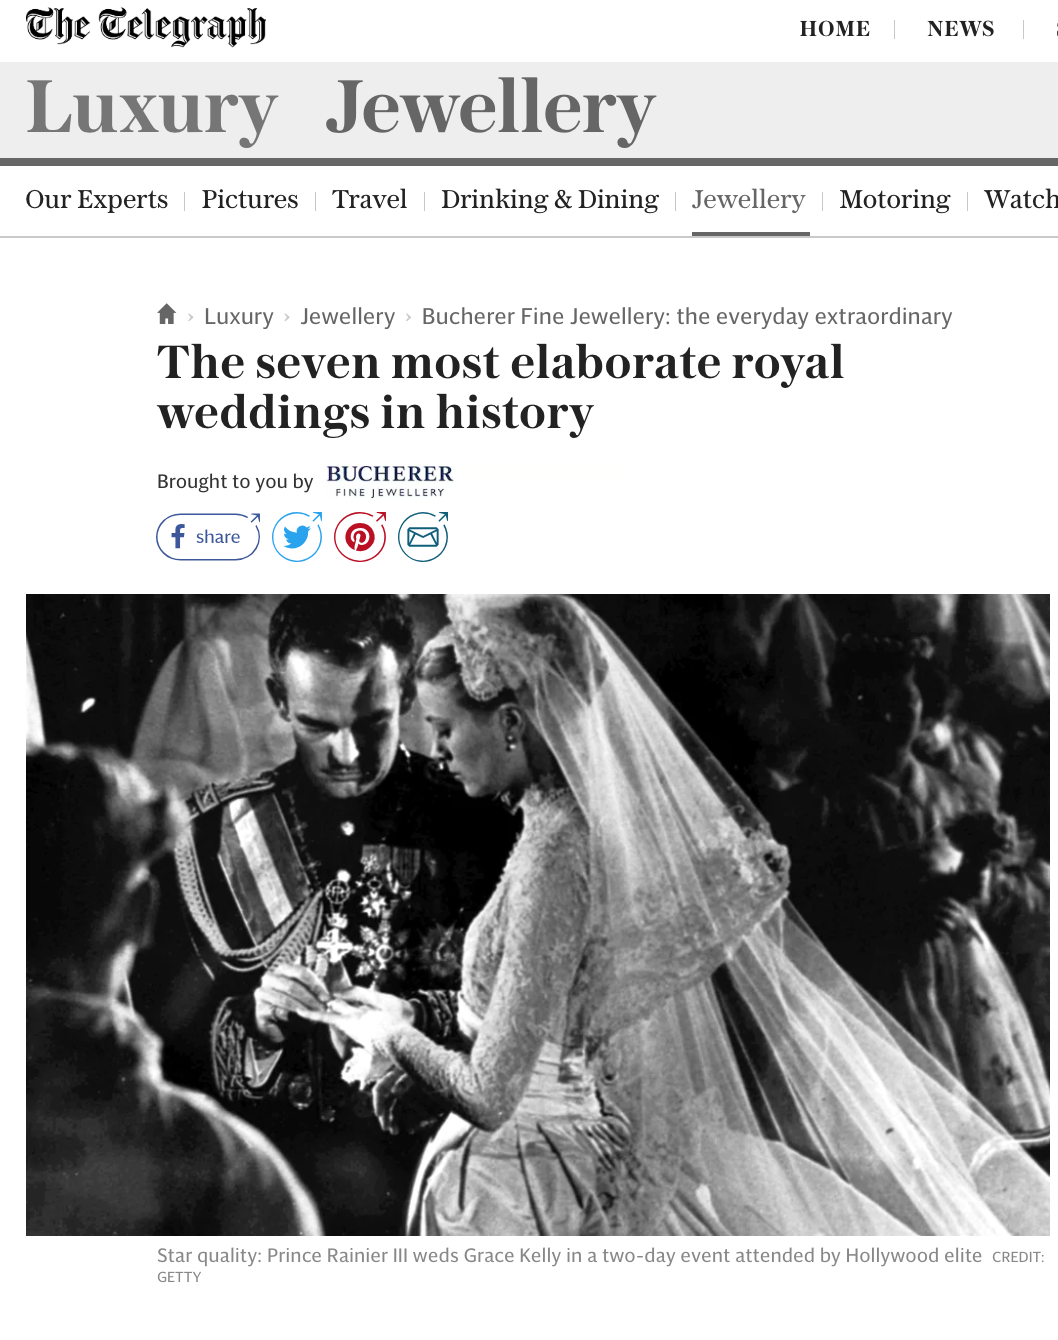 The 7 Most Elaborate Weddings in History